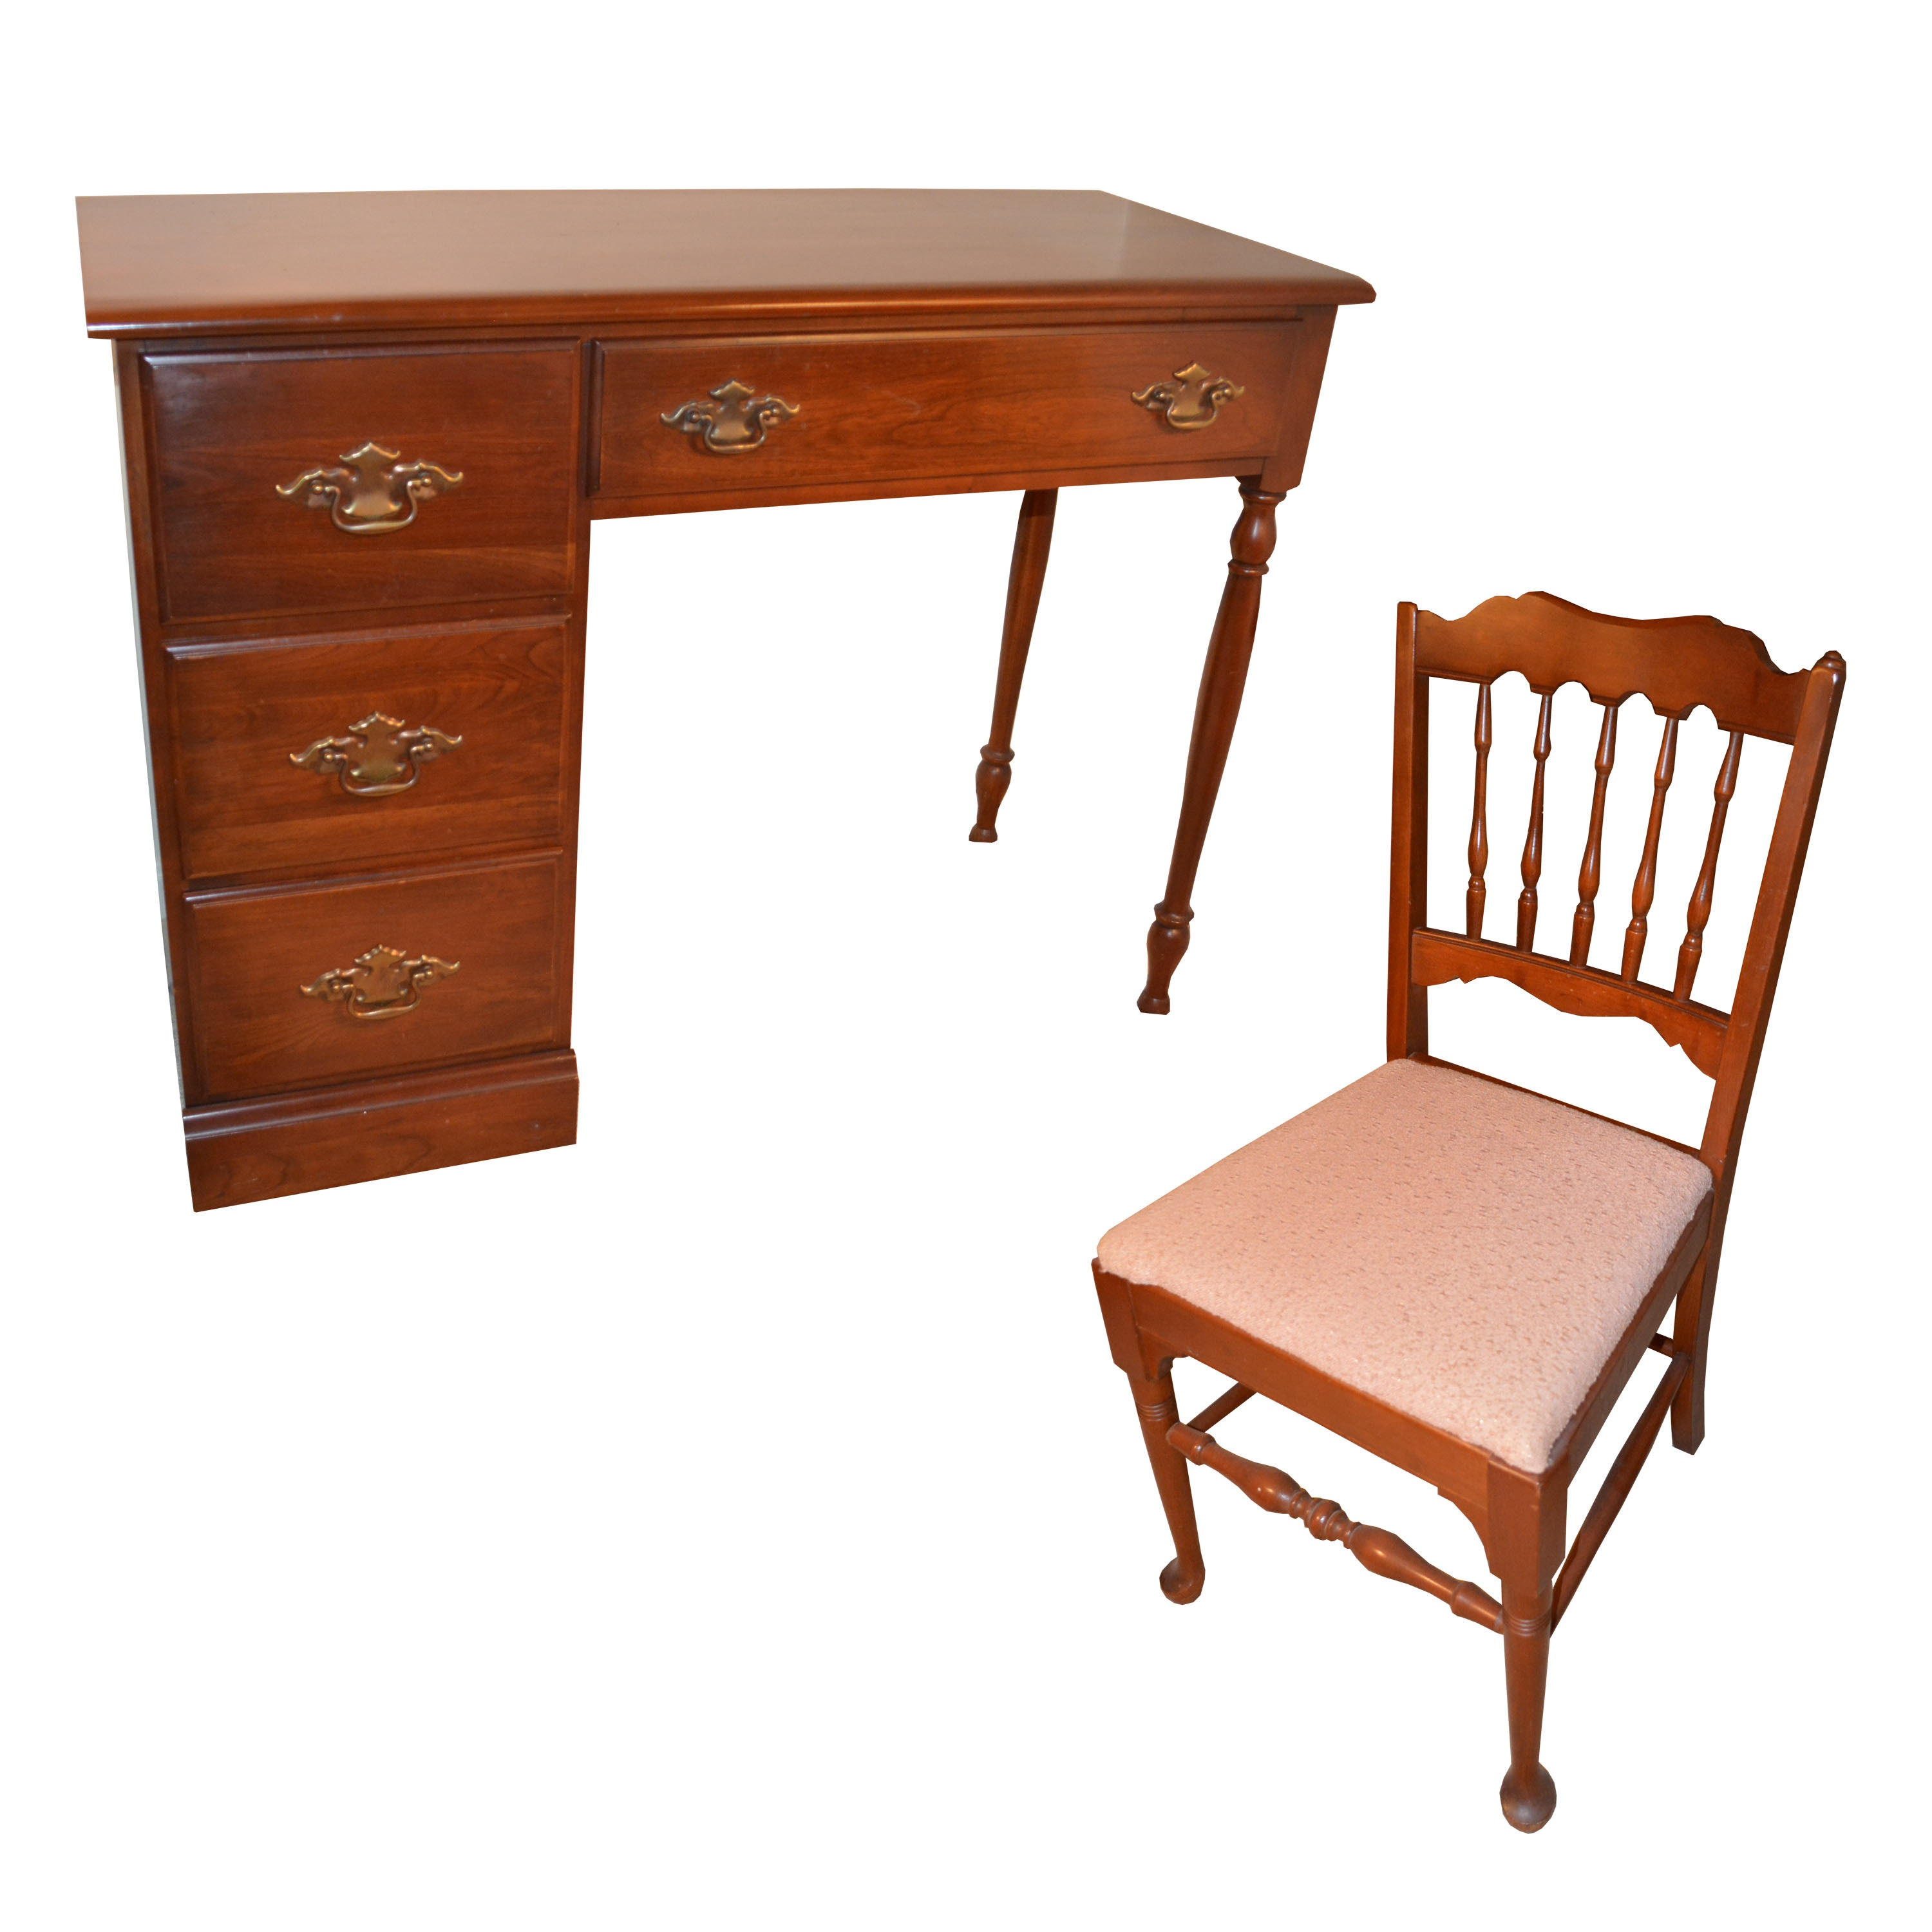 Solid Cherry Writing Desk with Chair by Young Hinkle